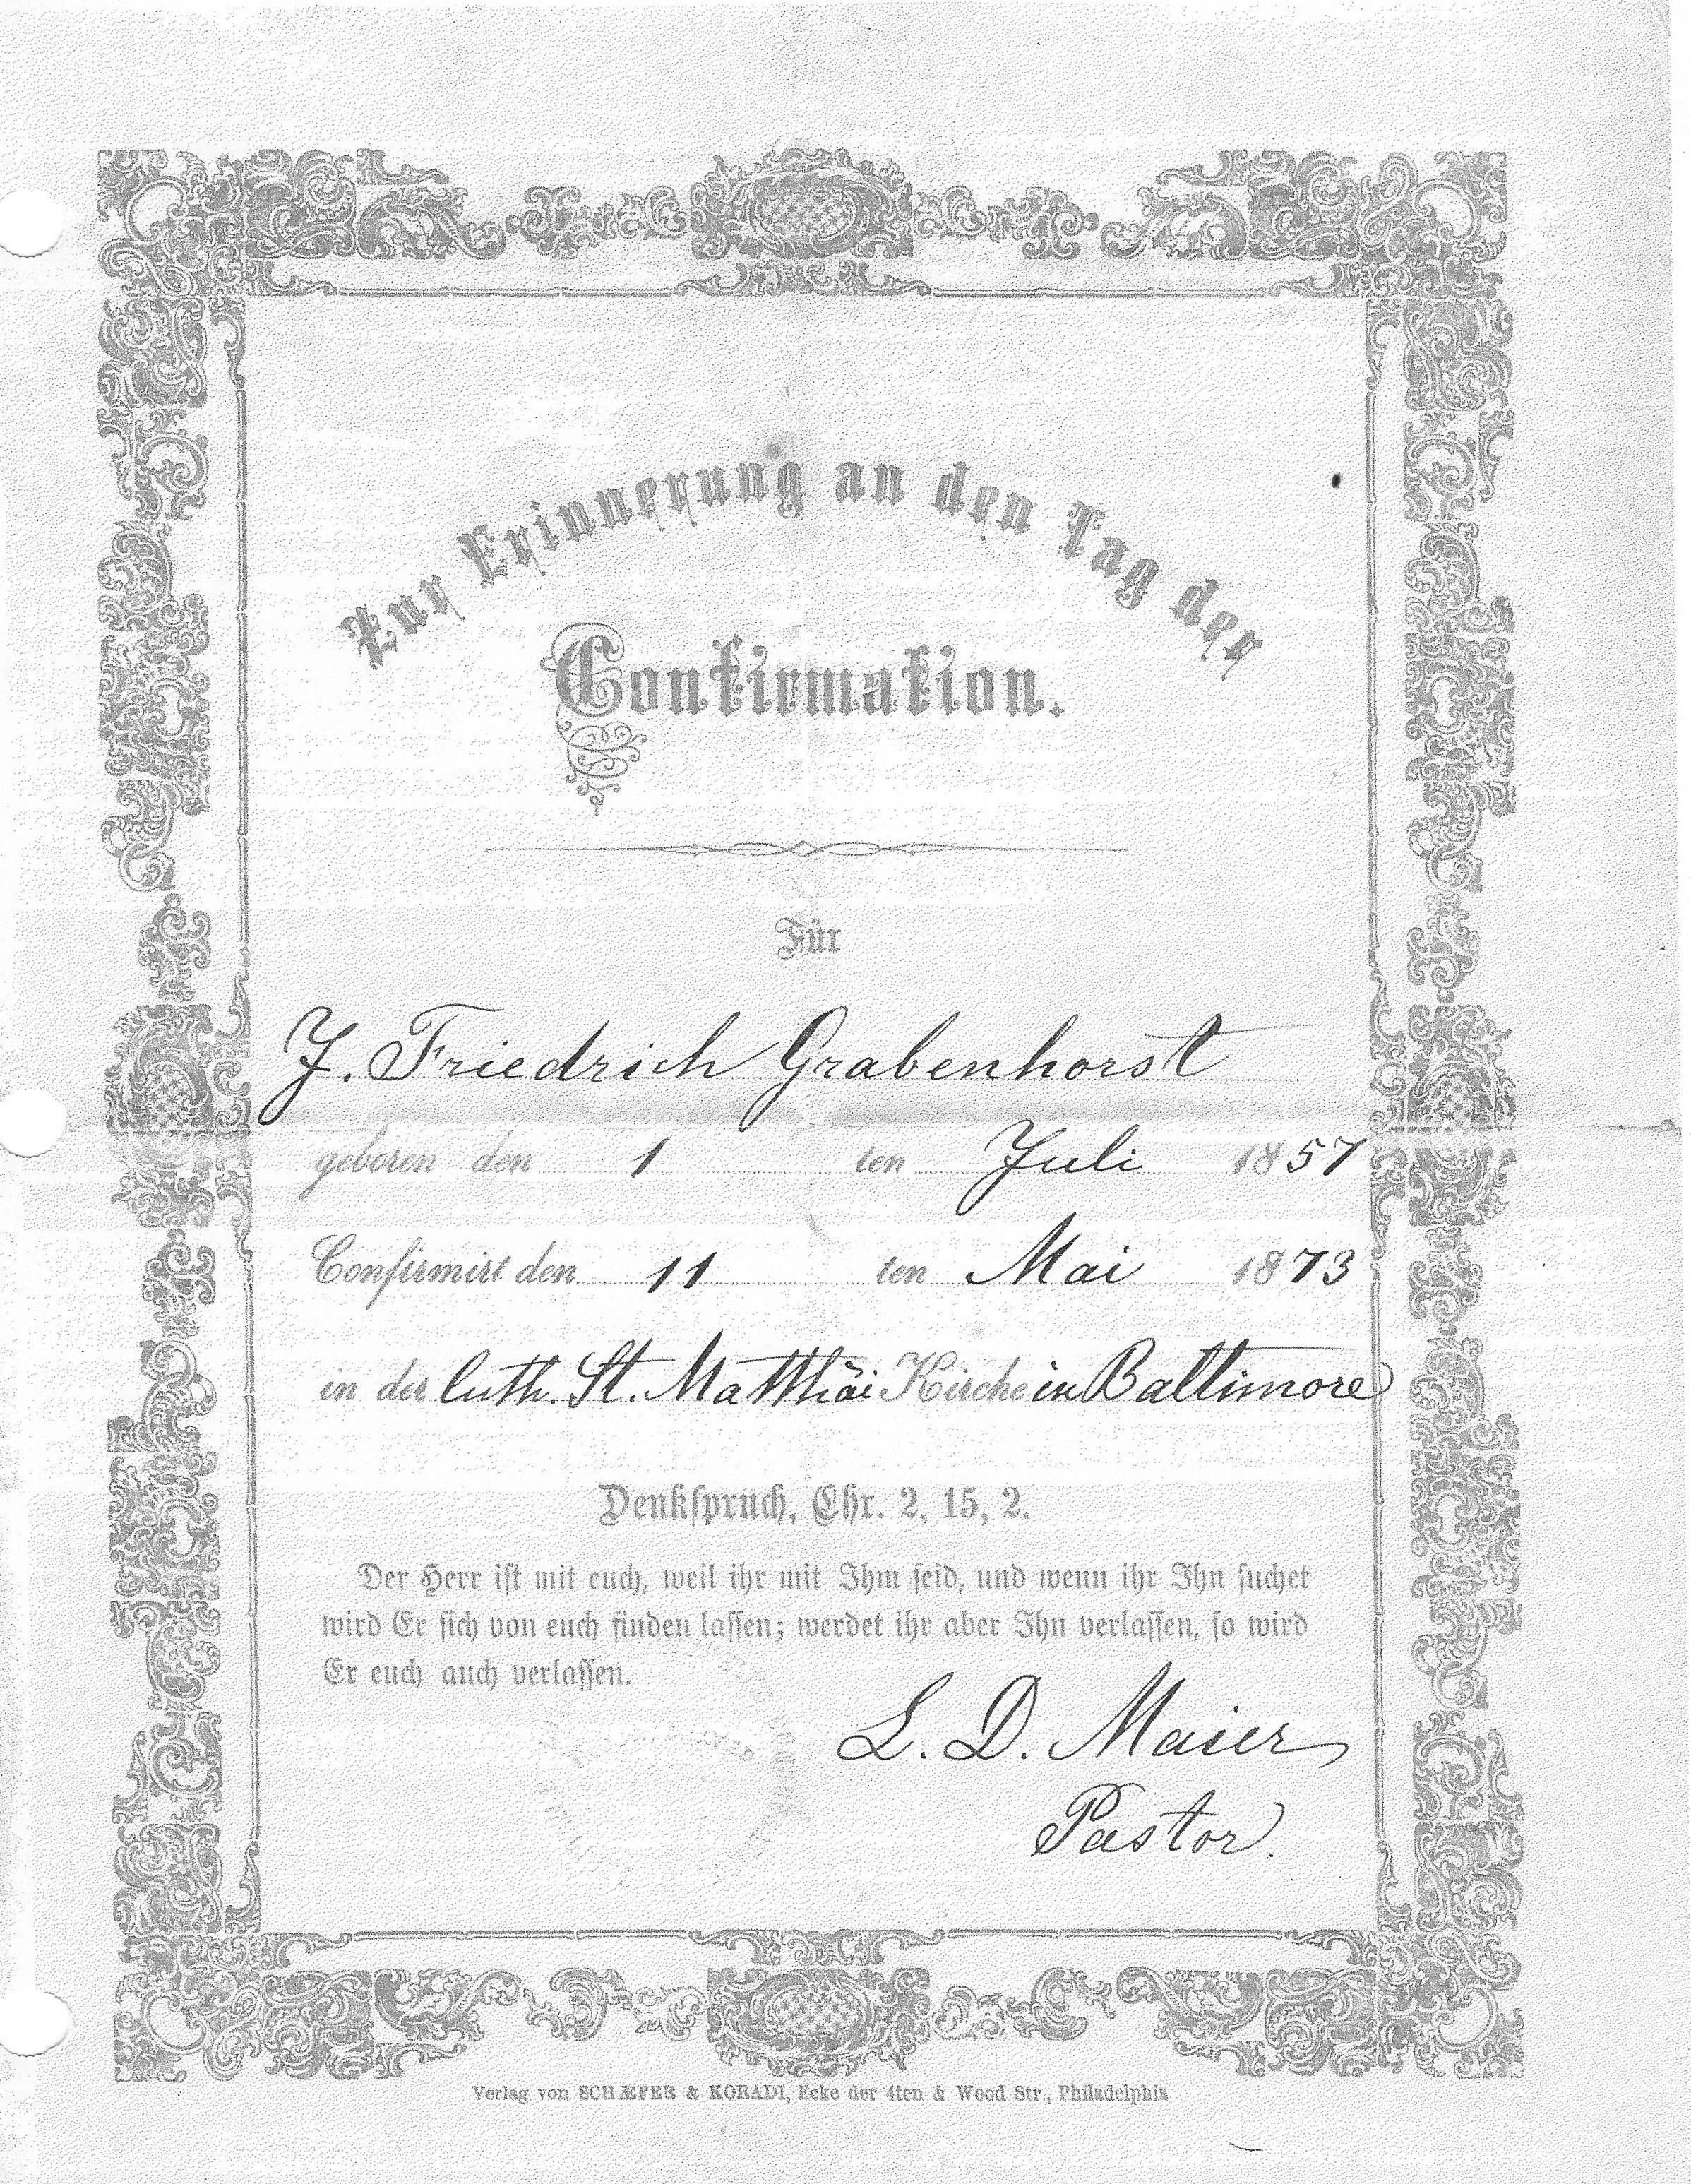 Descendents of henry george grabenhorst henry christian grabenhorst confirmation certificate j friedrich grabenhorst born 1 july 1857 confirmed 11 mar 1873 st matthew lutheran church baltimore maryland aiddatafo Image collections